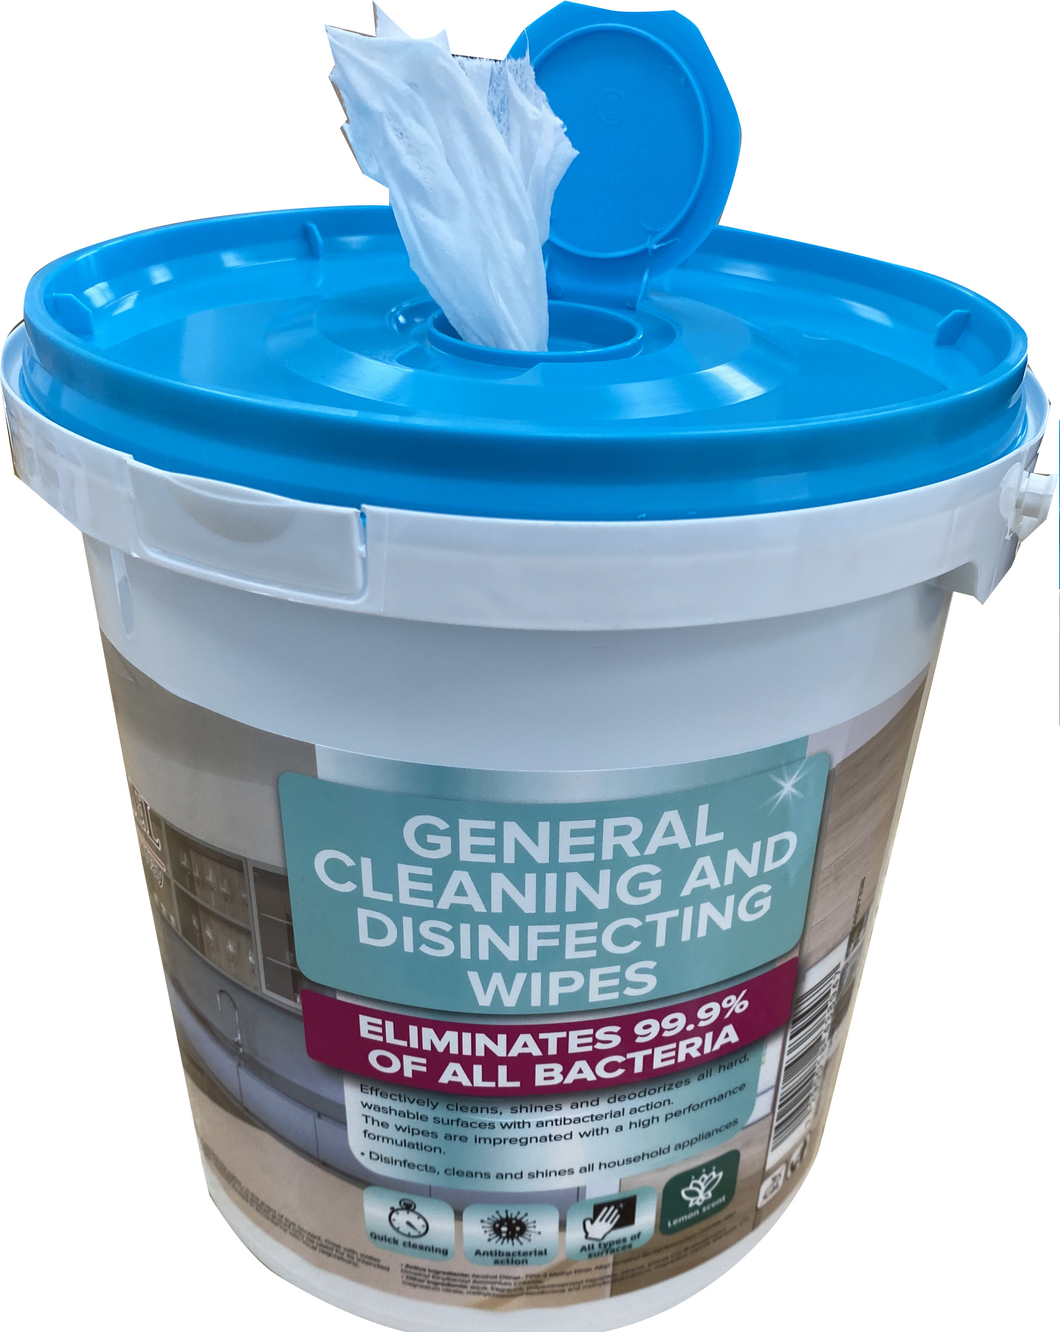 Vega/Carmel - 400 Disinfecting wipes - 1 bucket of 400 wipes